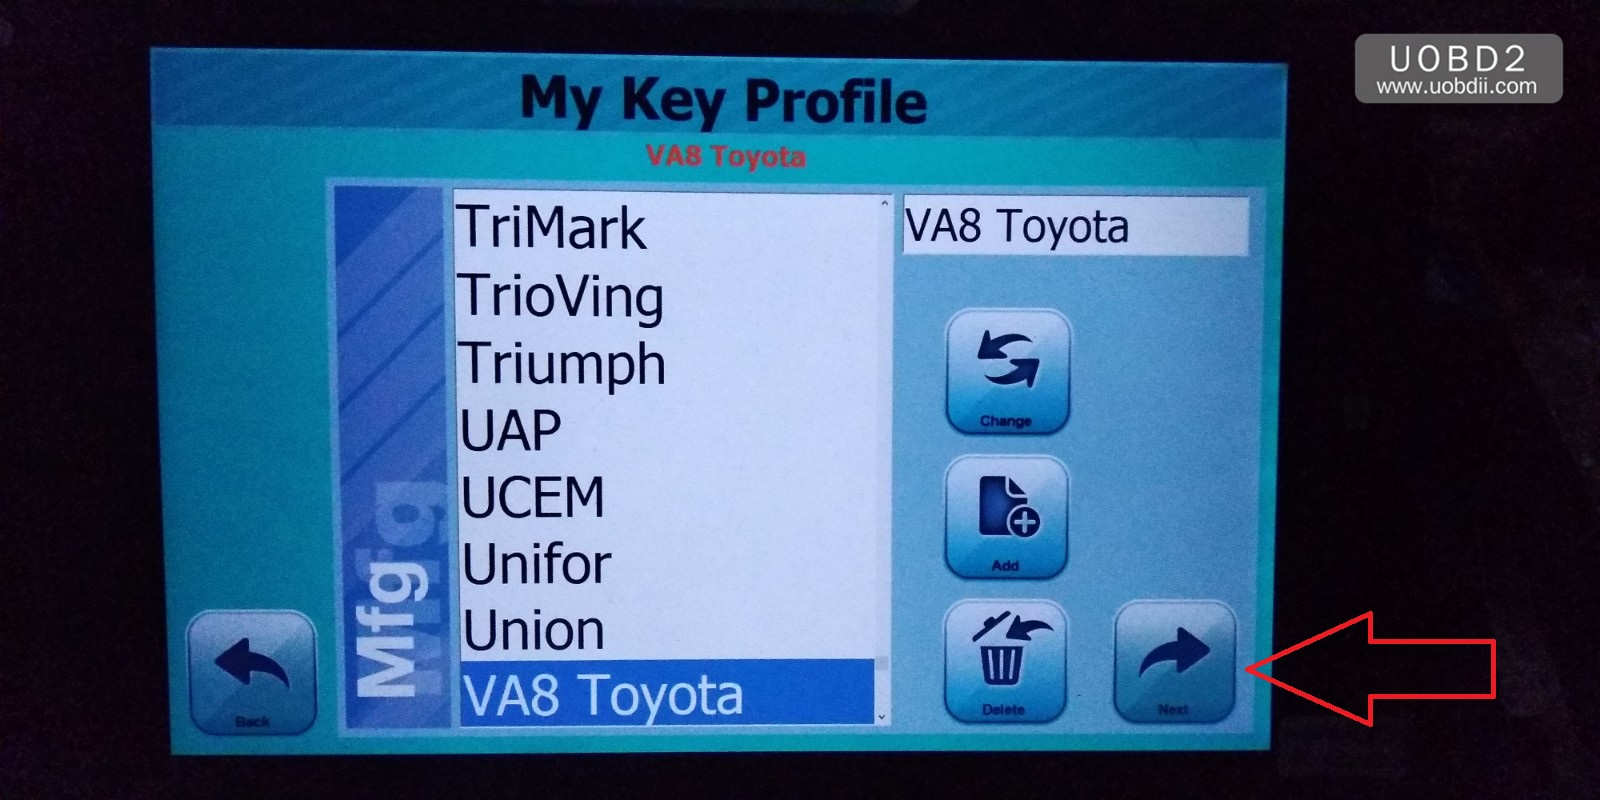 sec-e9z-create-new-key-for-va8-toyota-05